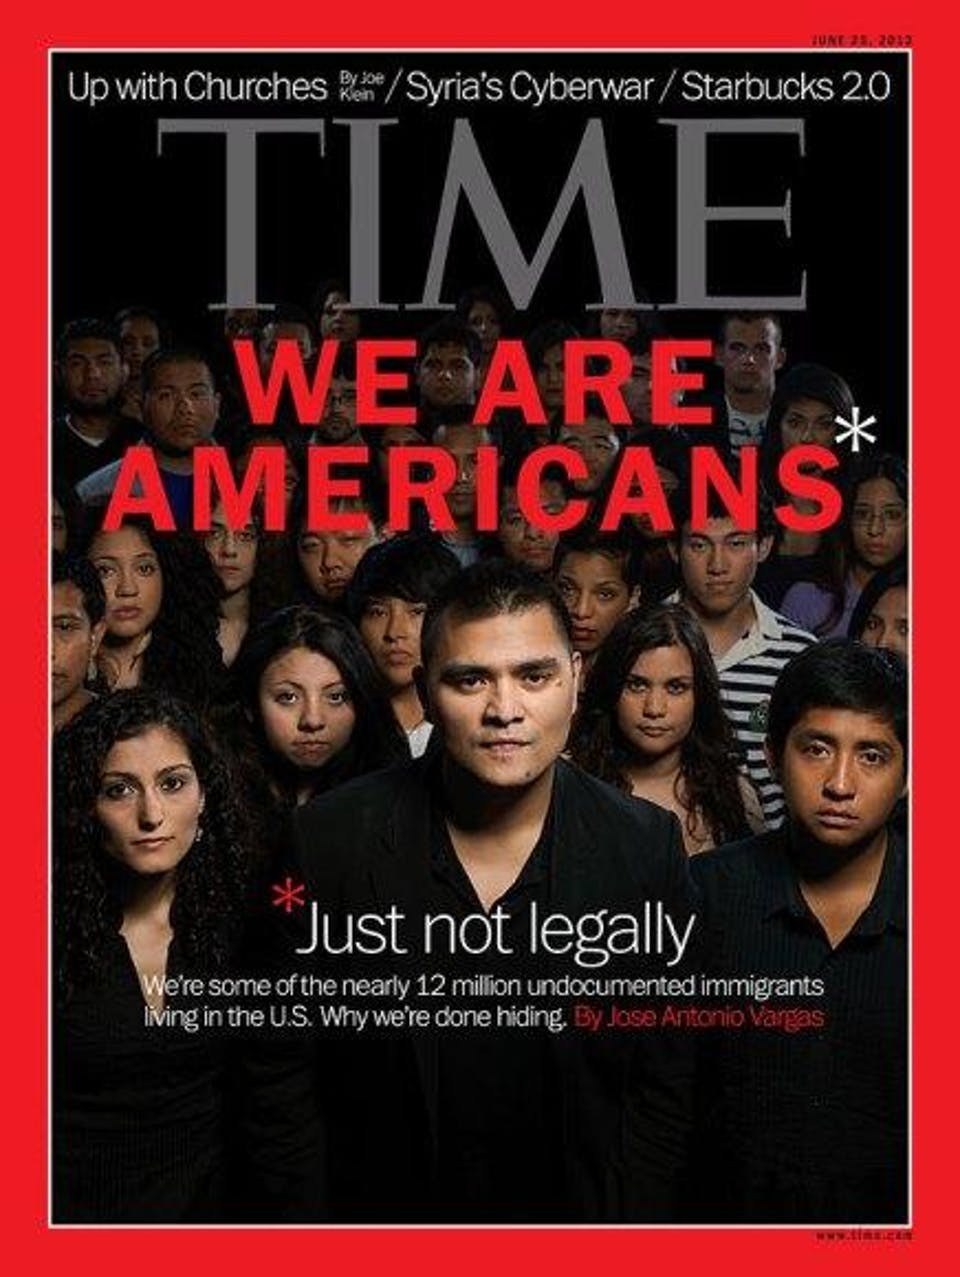 Jose Antonio Vargas: How Undocumented Immigrants are Left Out of Recovery